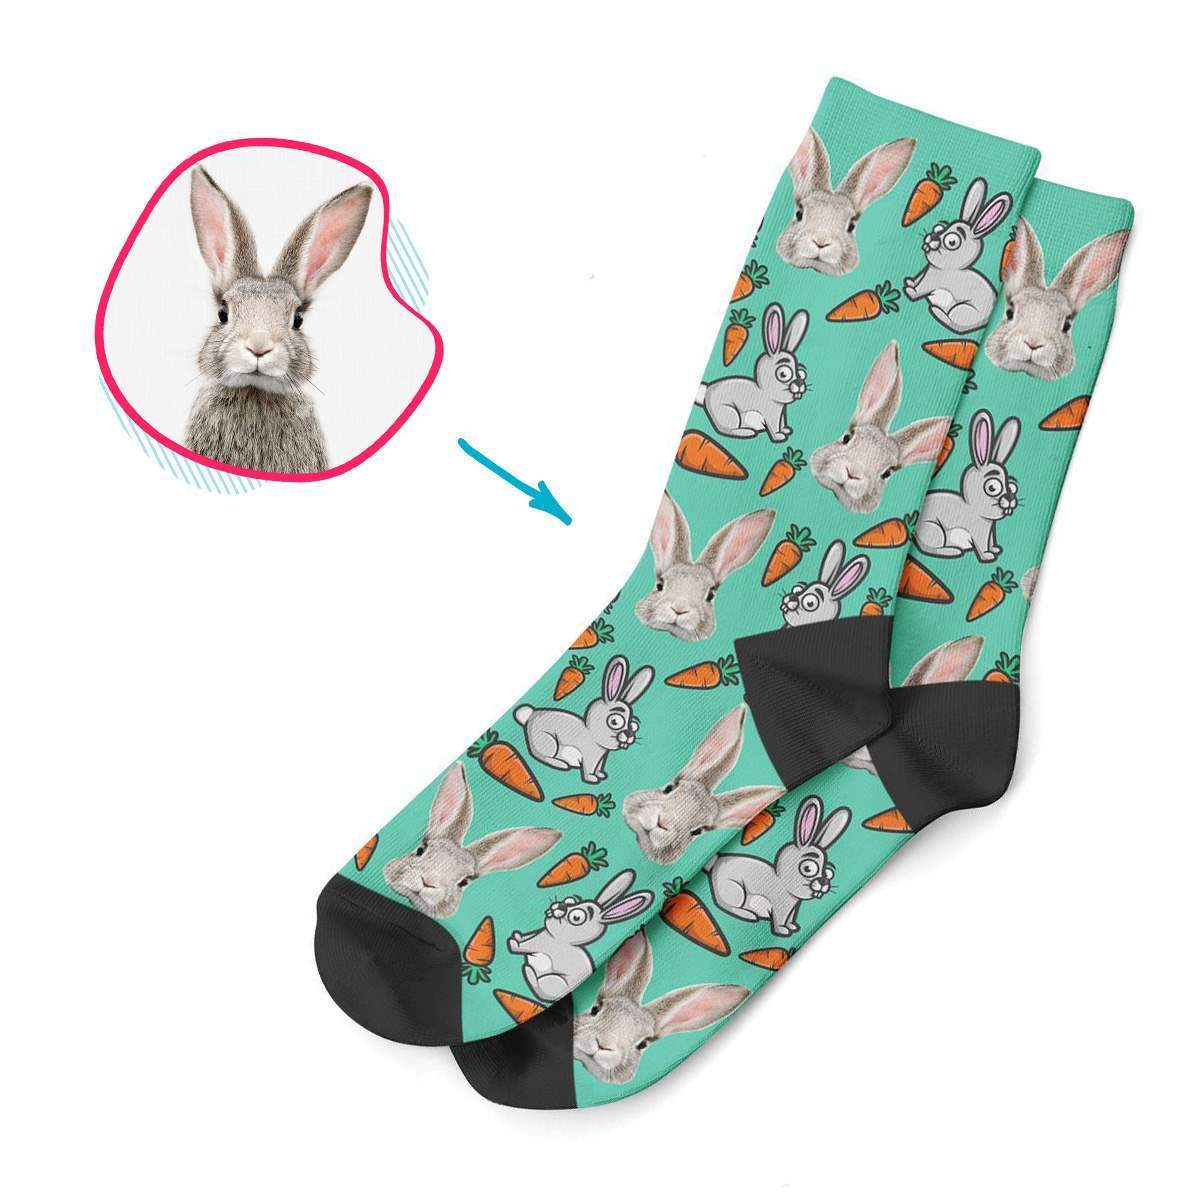 mint Bunny socks personalized with photo of face printed on them